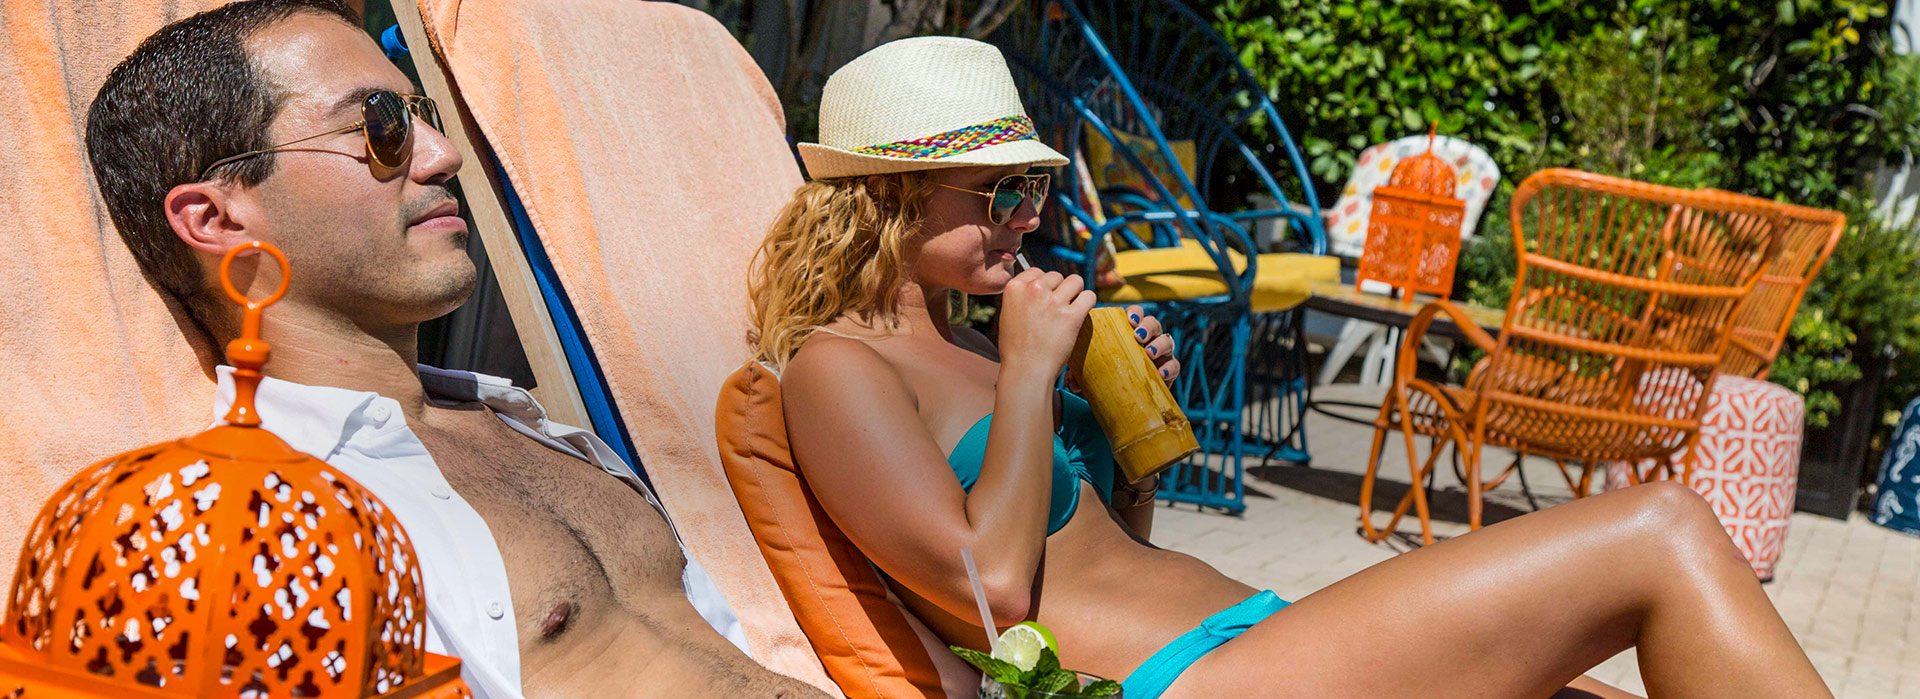 circa 39 exterior building of signage surrounded by palm trees